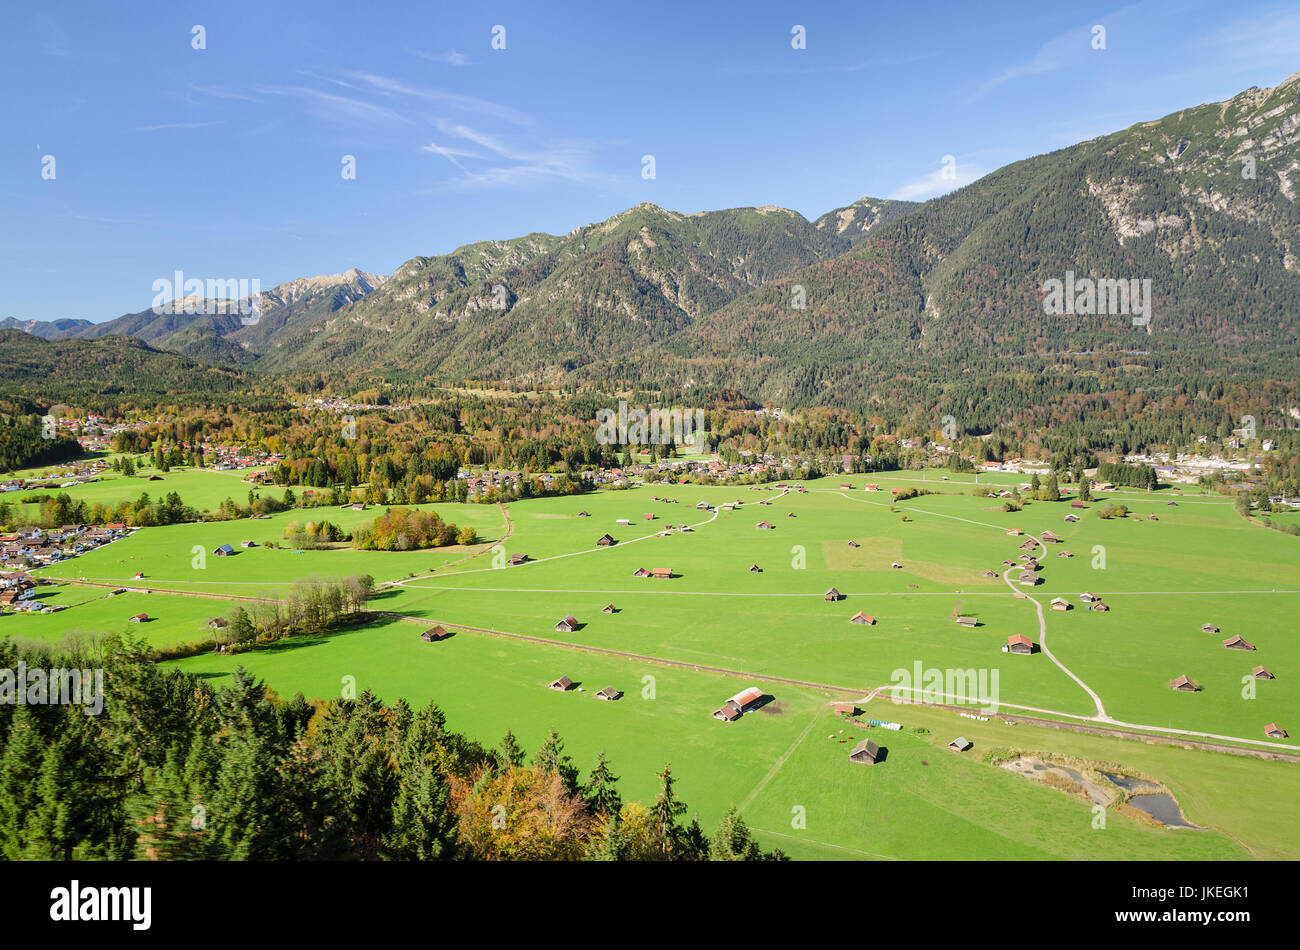 Alpine aerial view of Bavarian valley with fresh green pastureland in Garmisch-Partenkirchen region - Stock Image